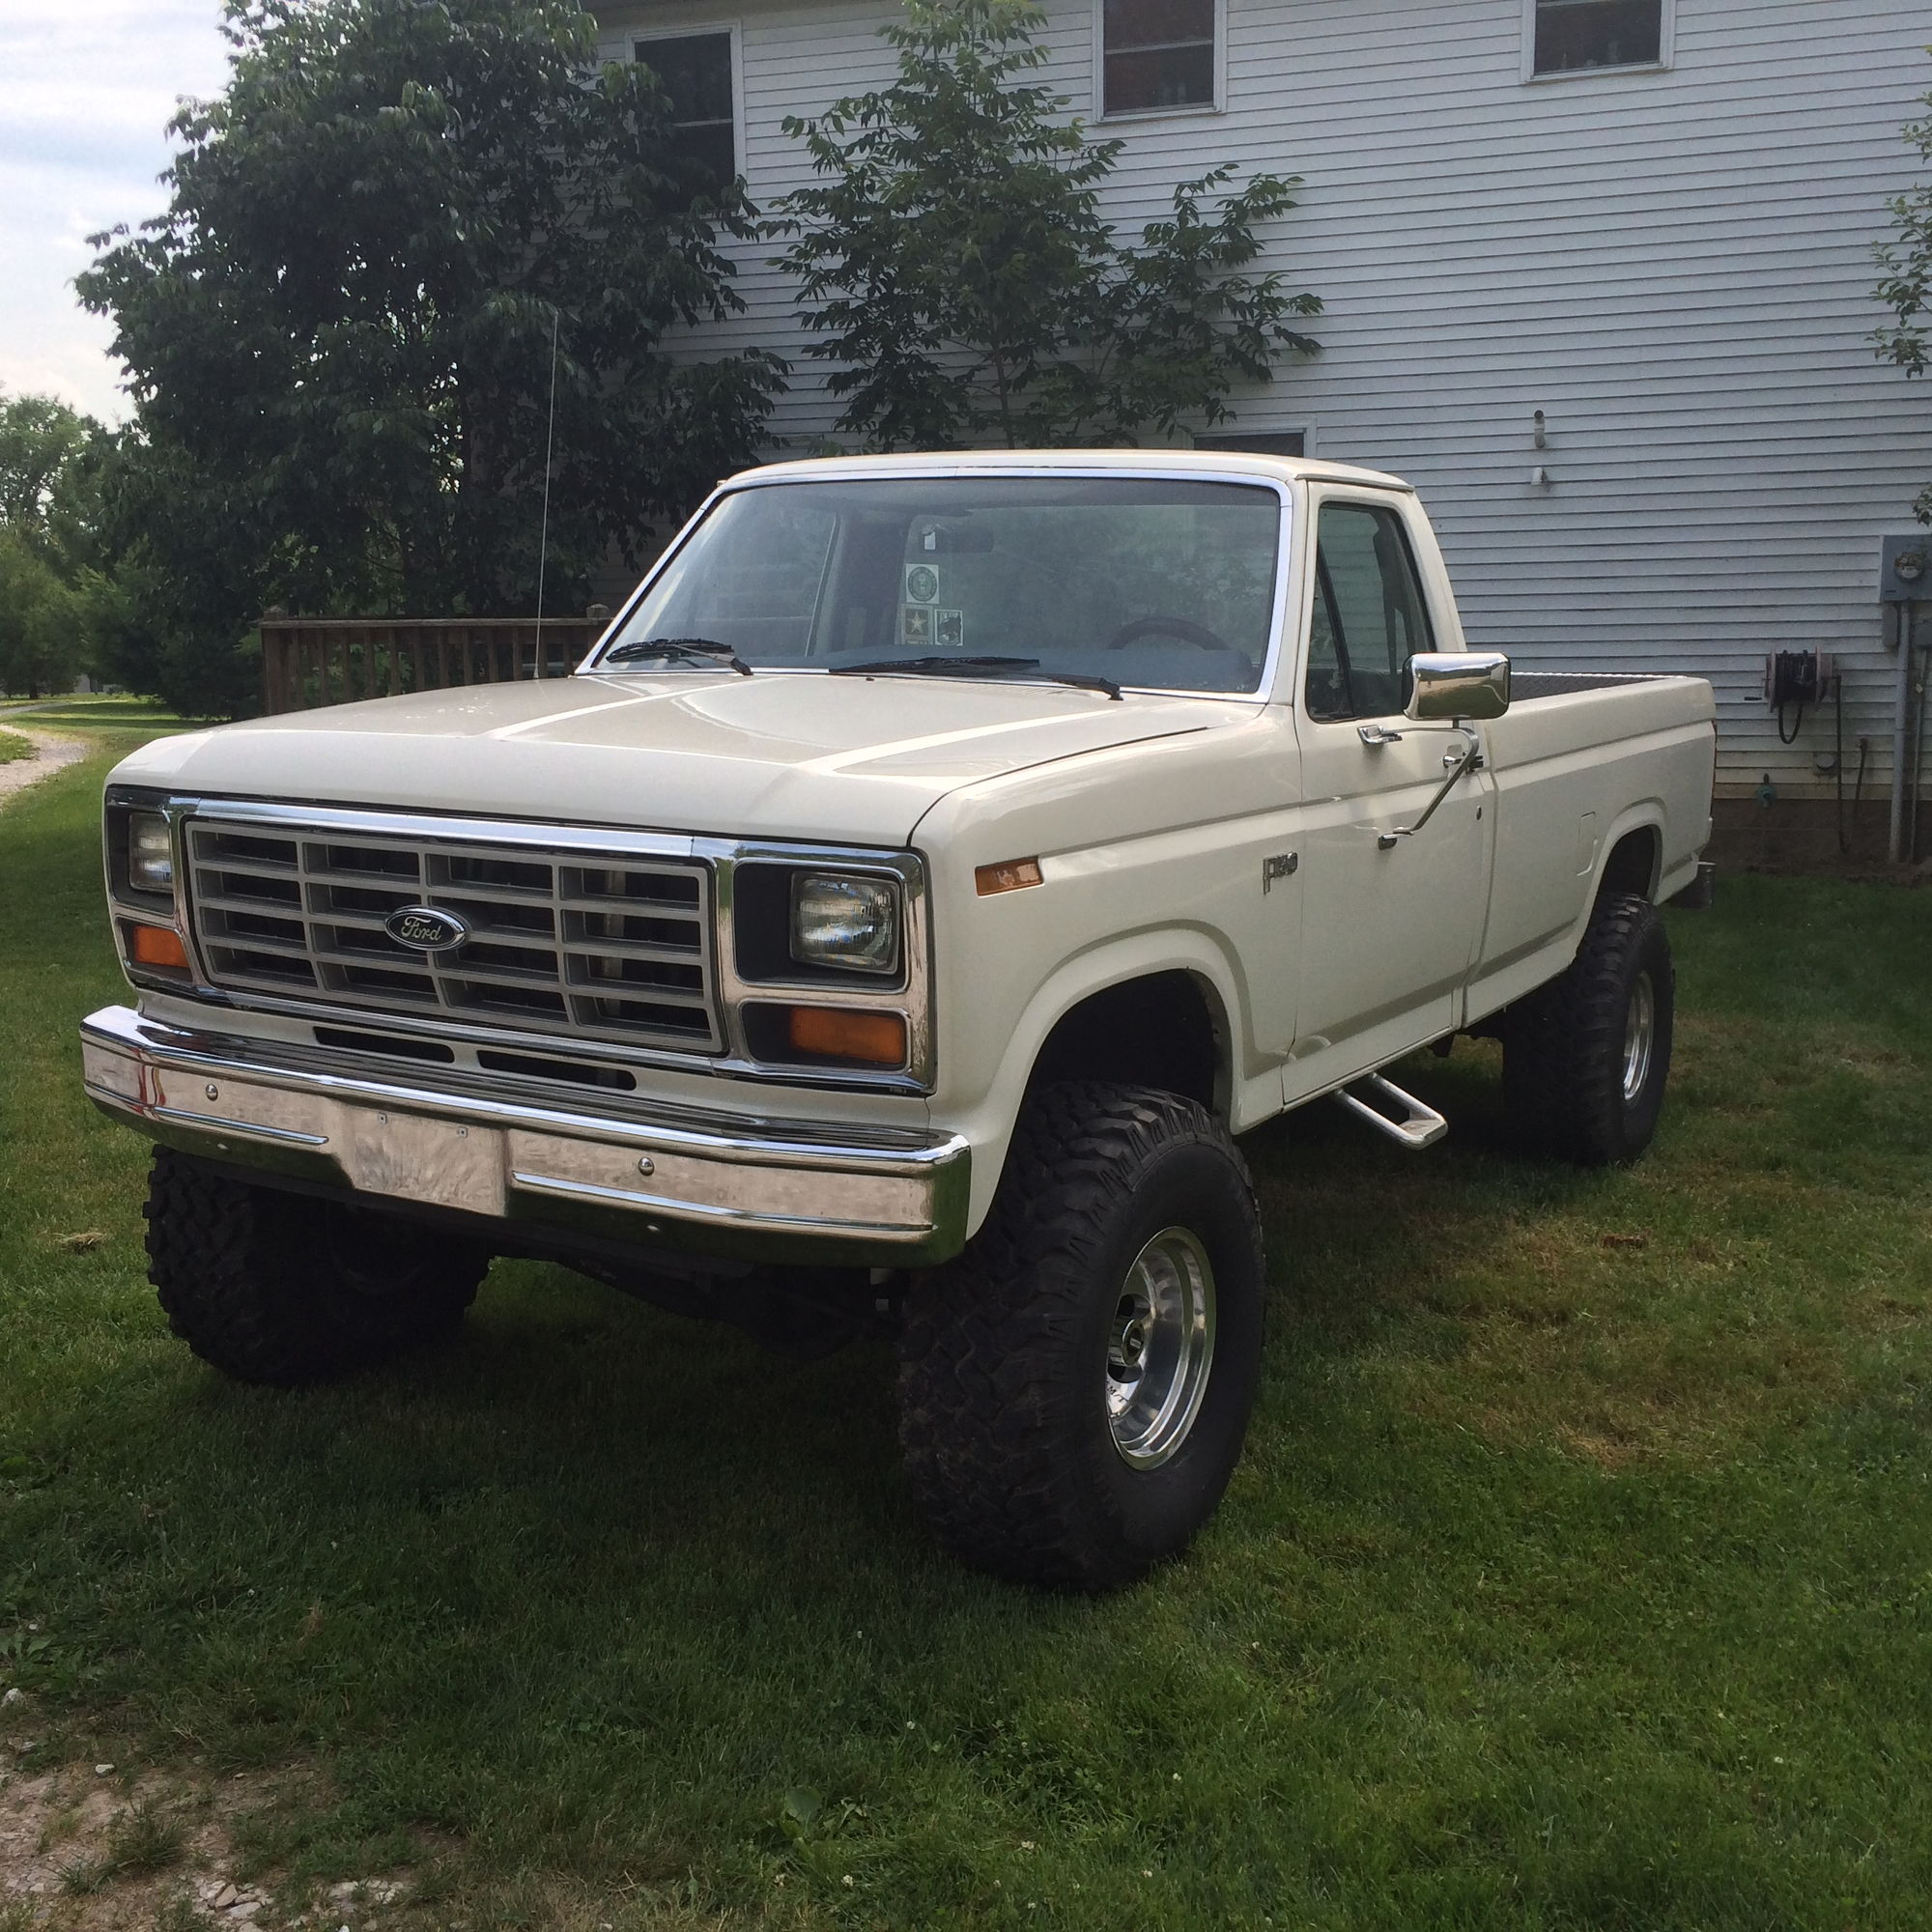 81 ford f150 4x4 6000obo ford truck enthusiasts forums. Black Bedroom Furniture Sets. Home Design Ideas